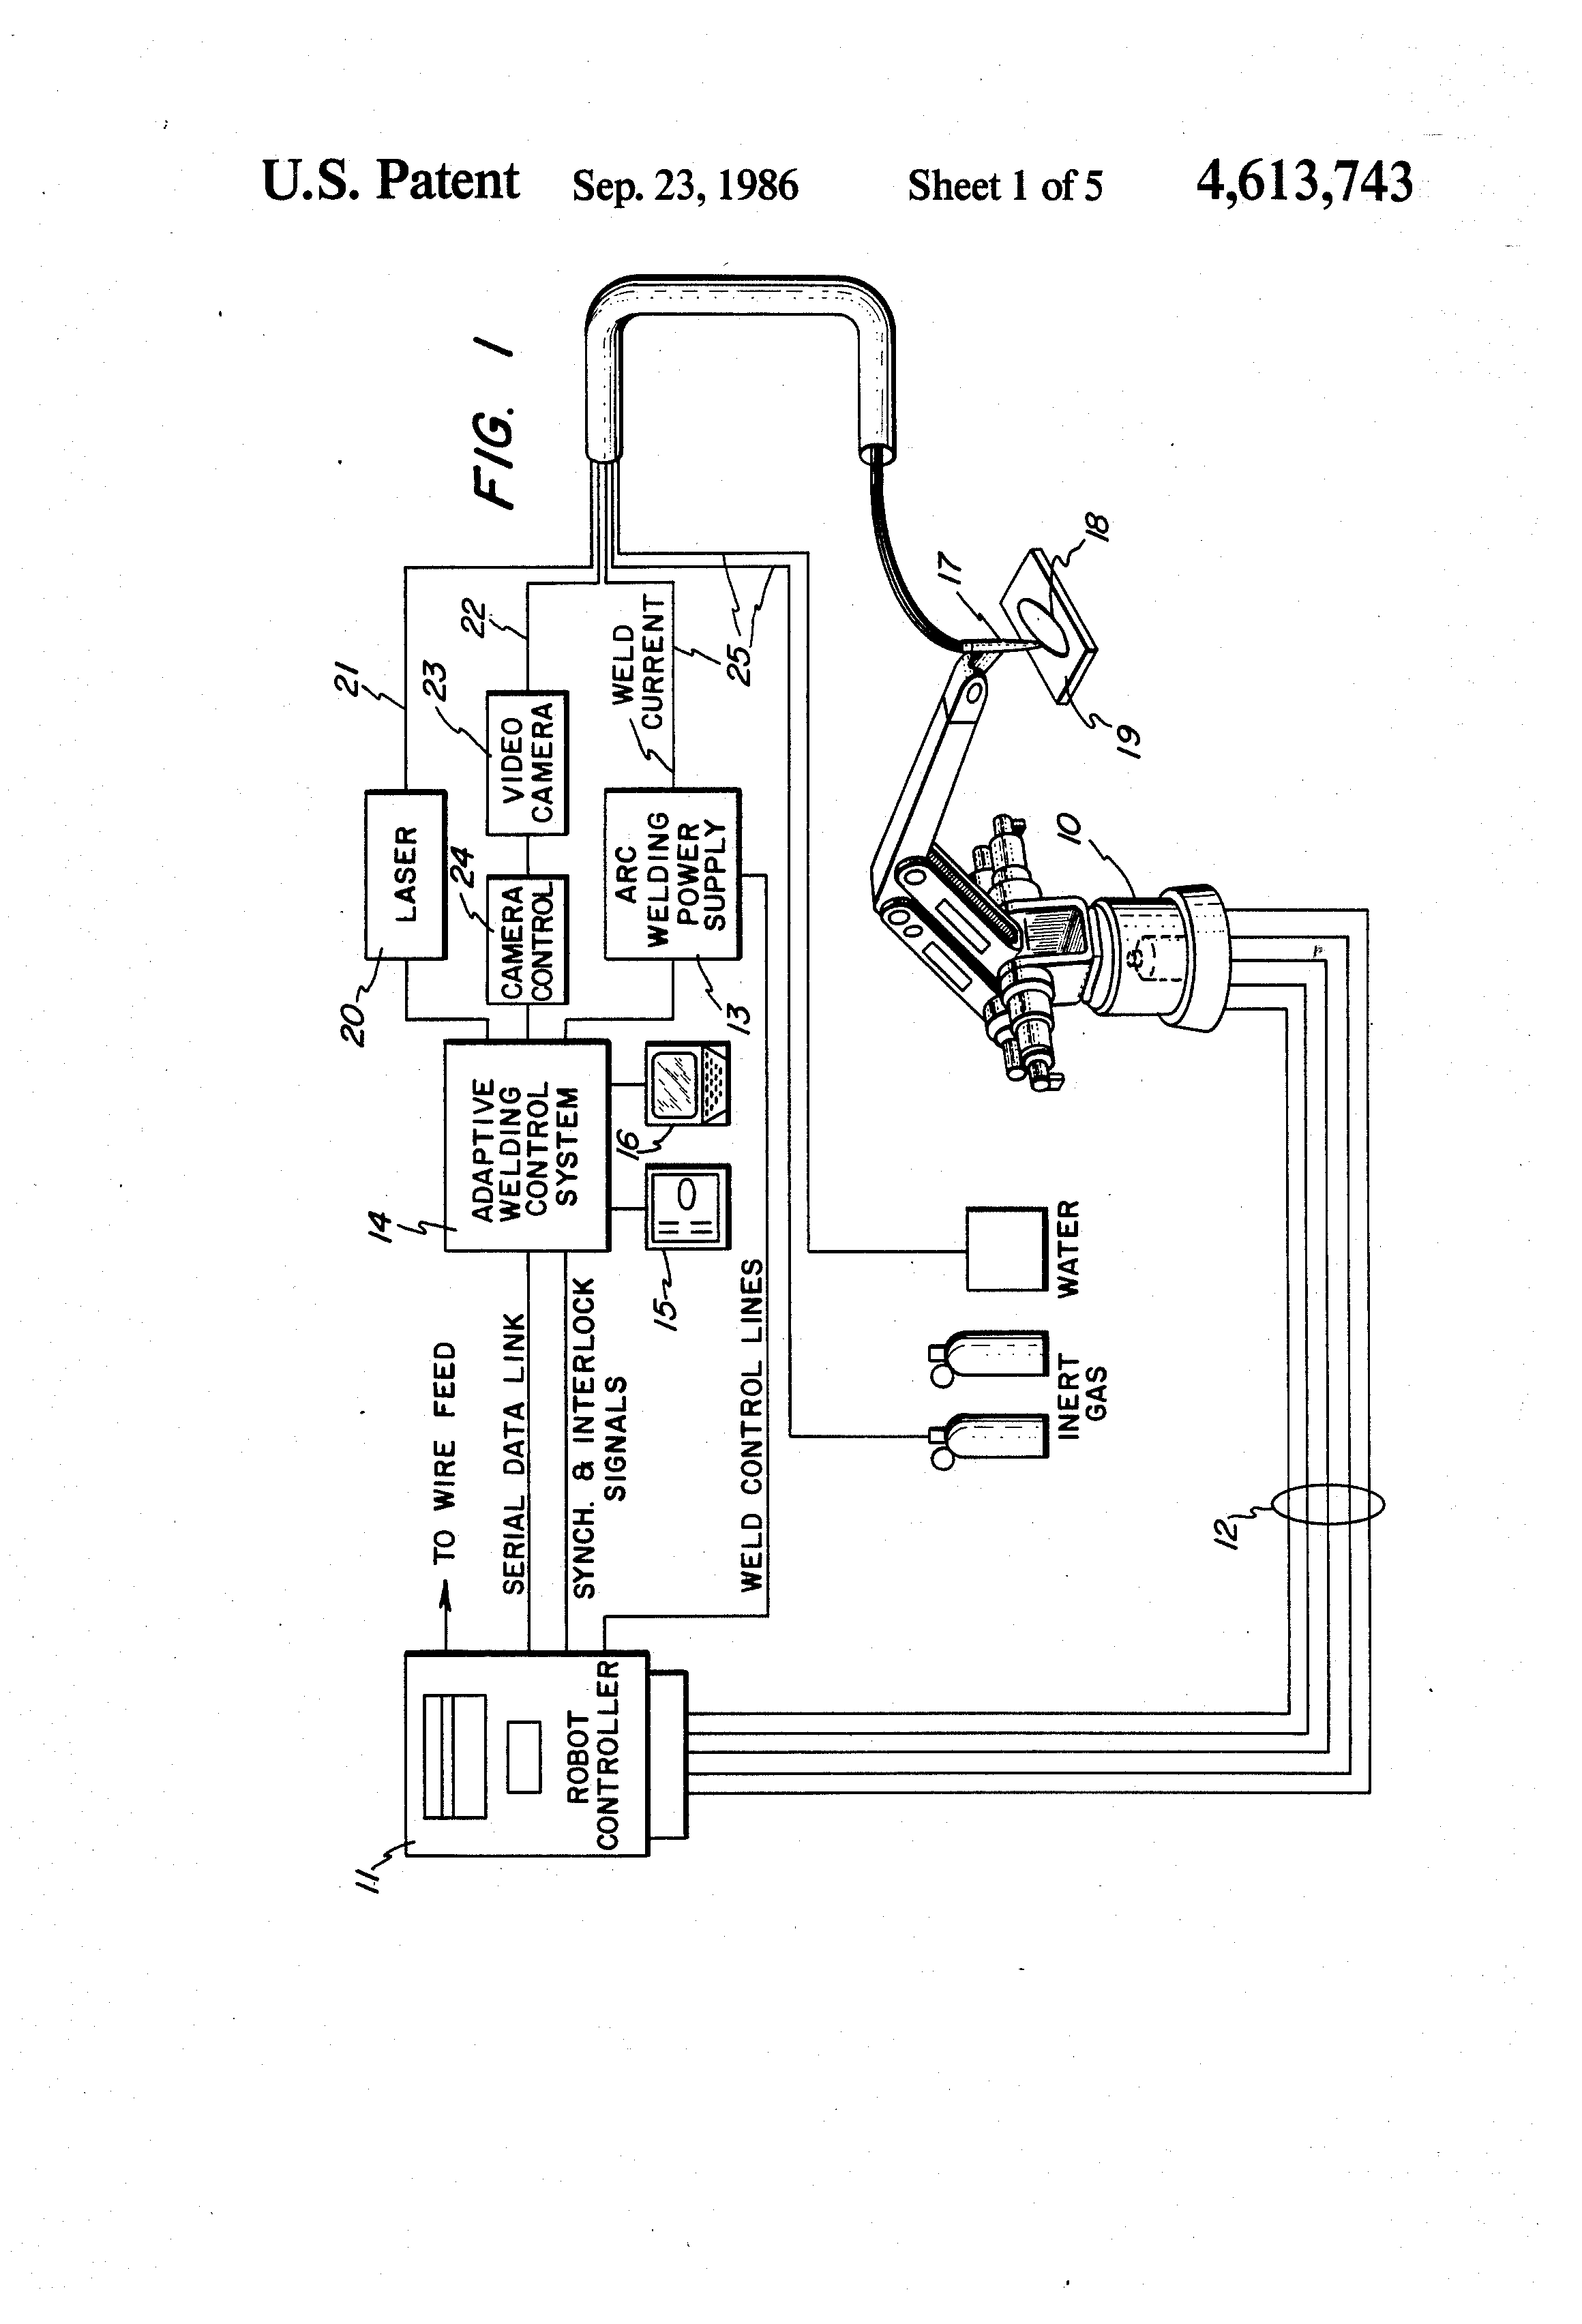 Diagram Of Welding Process Us4613743 Arc Adaptive Control Patent Drawing